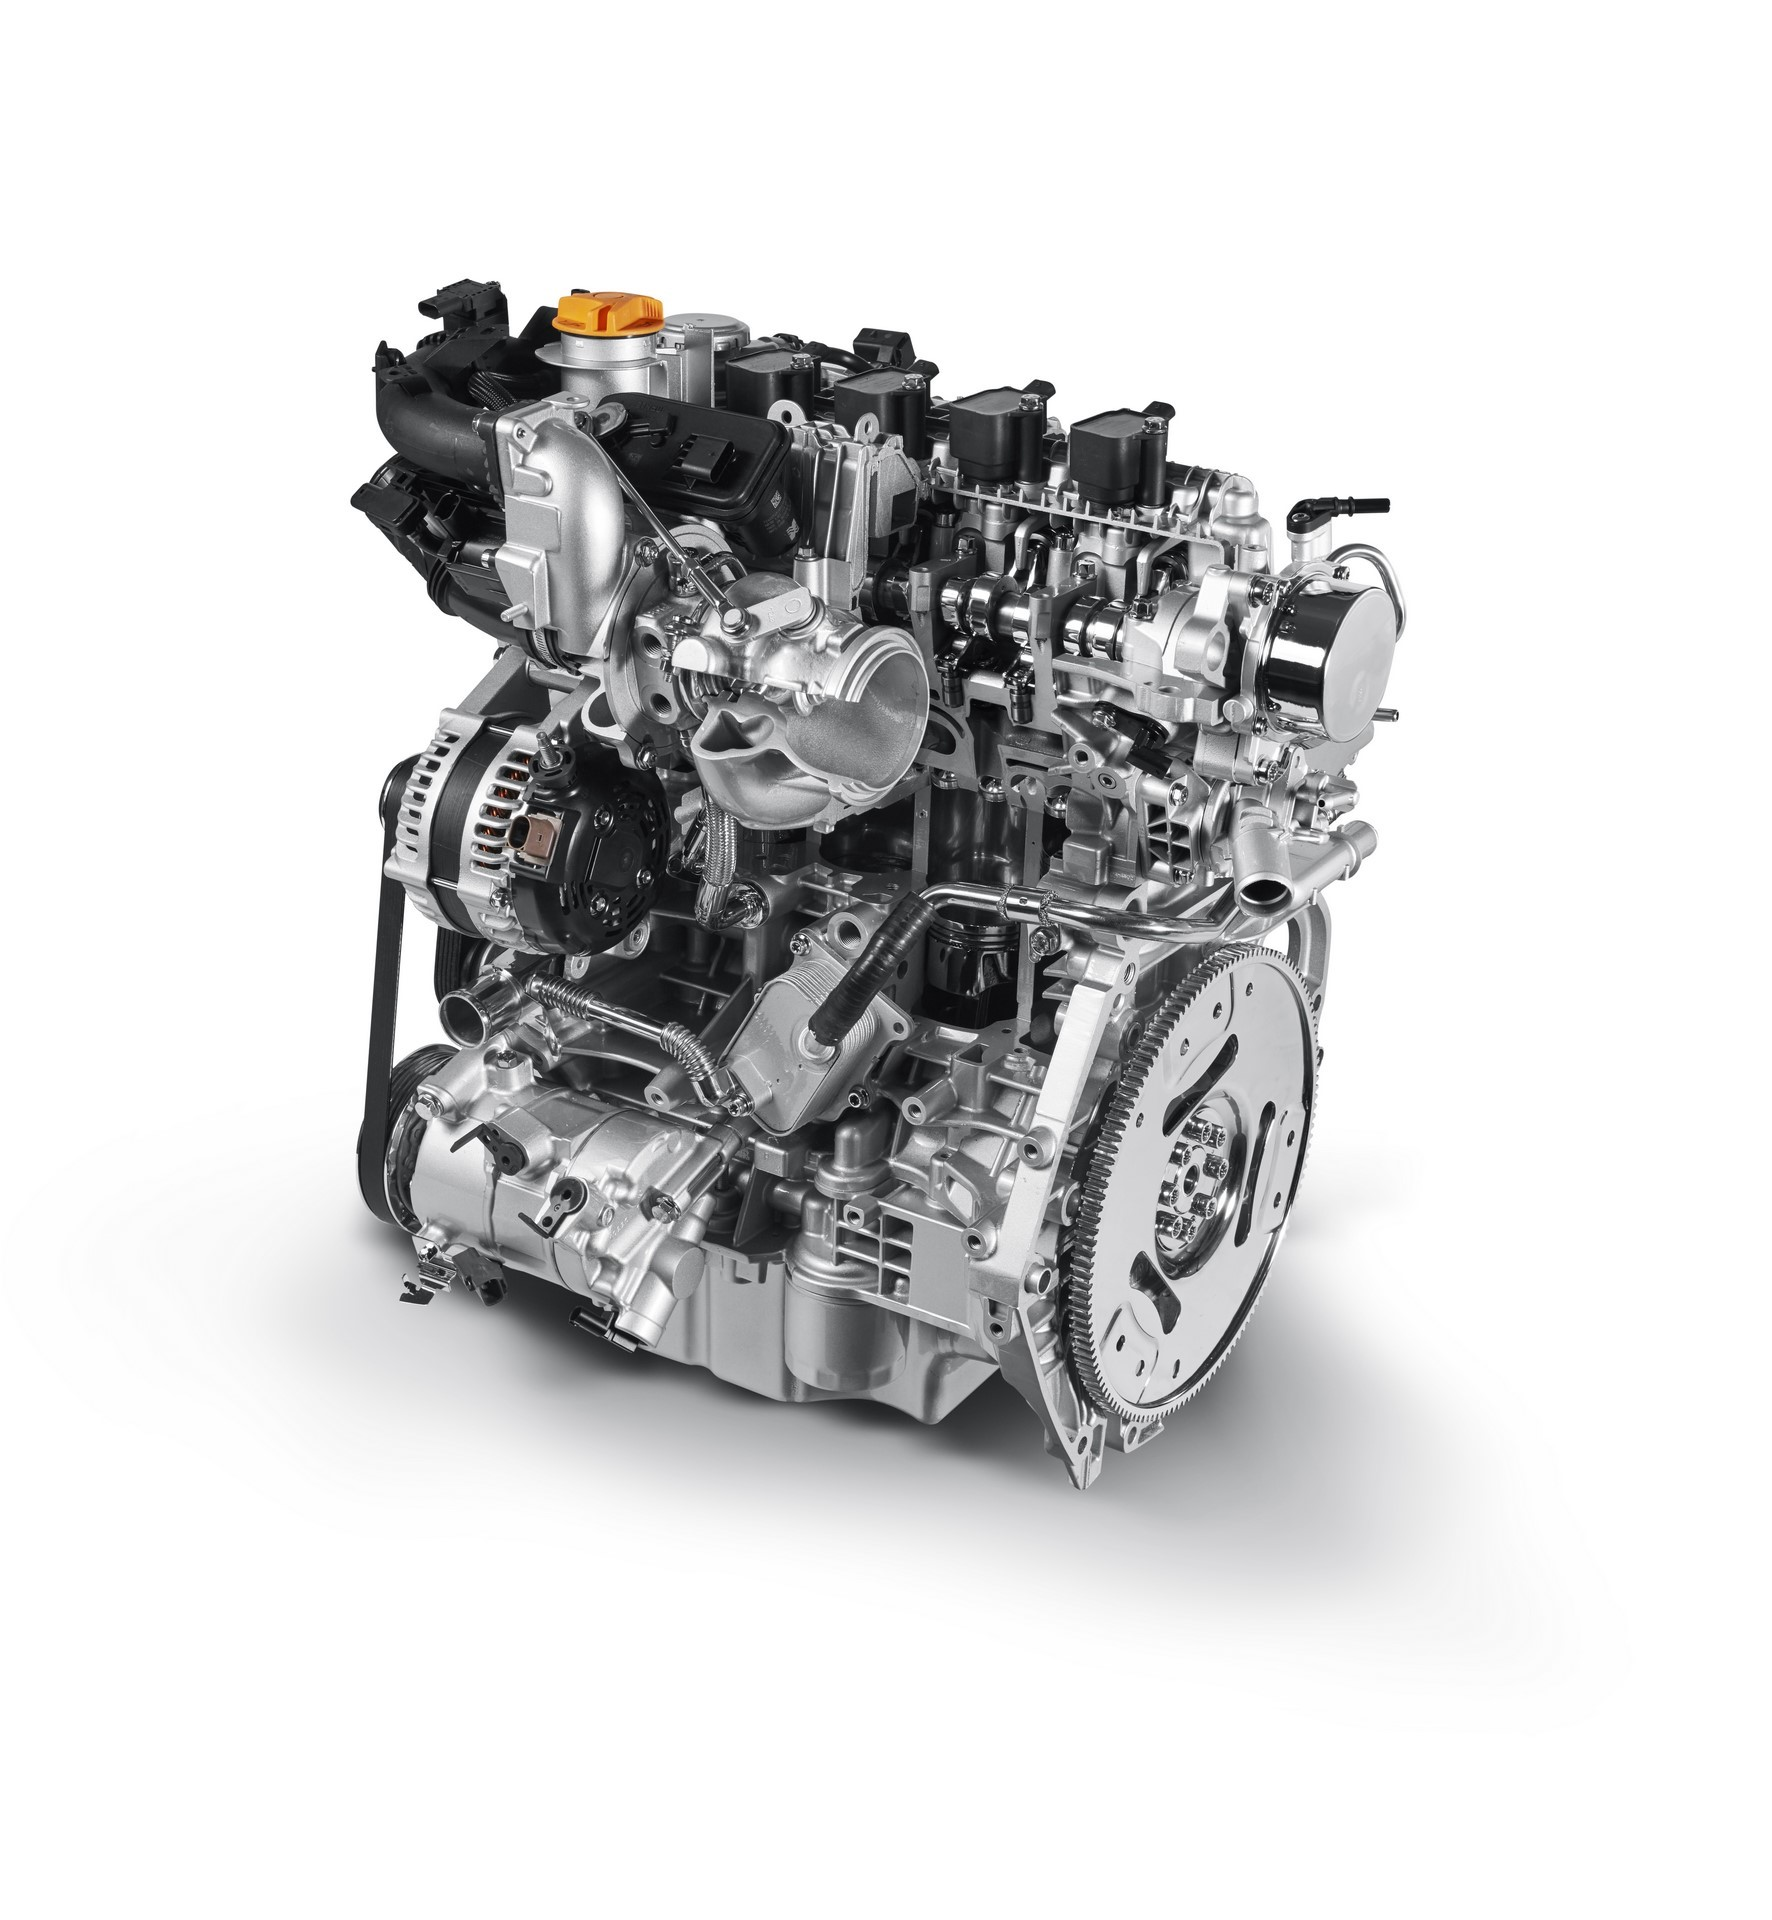 New-13L-Turbo-4-cylinder-150HP_11